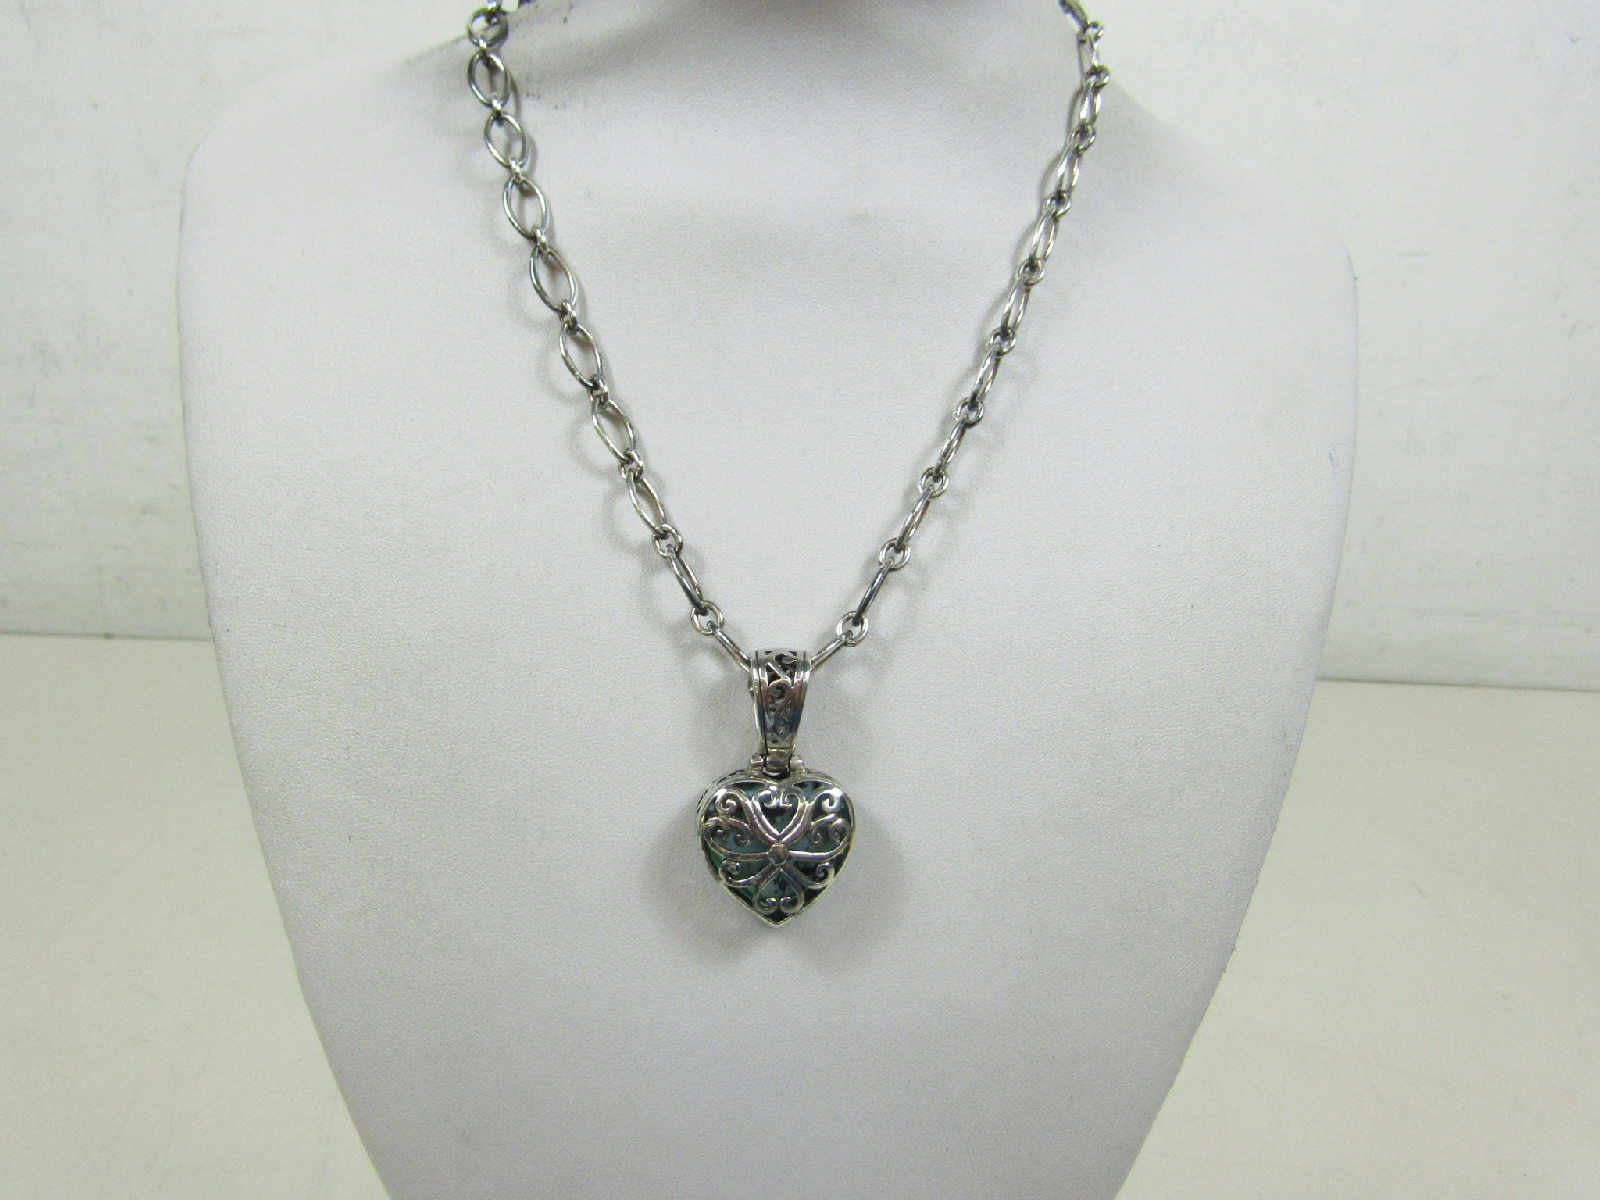 sterling silver jewelry necklace blue black heart stone. Black Bedroom Furniture Sets. Home Design Ideas